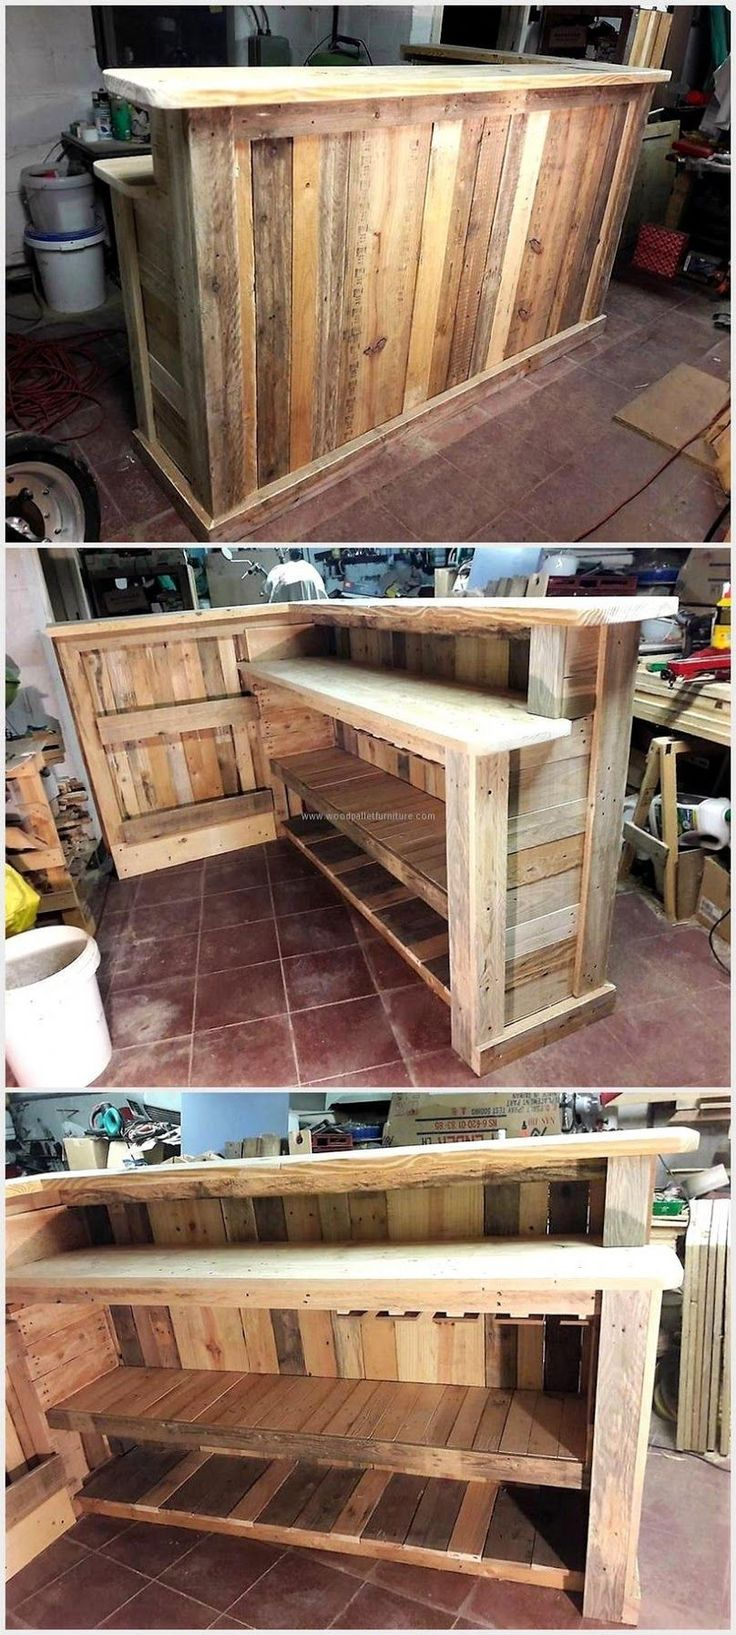 pallet-wooden-bar #thebasementbarcadedecor